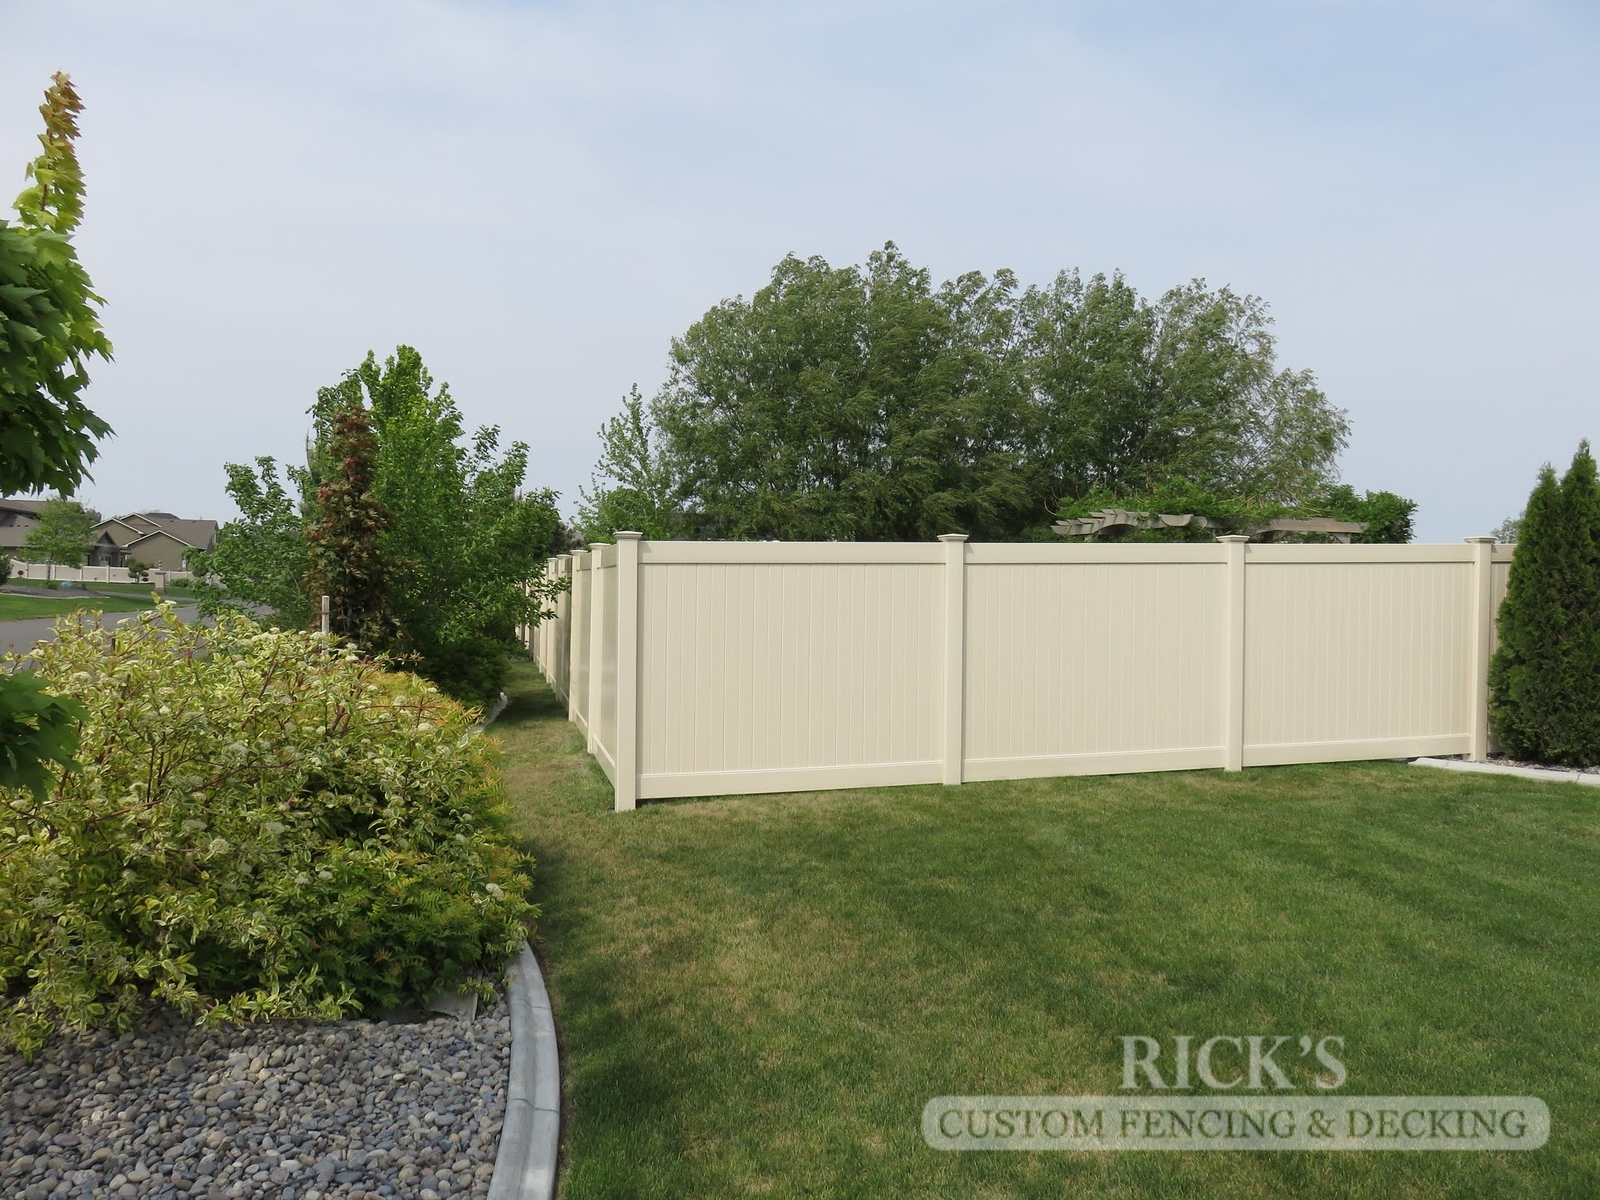 3017 - Vinyl Privacy Fencing